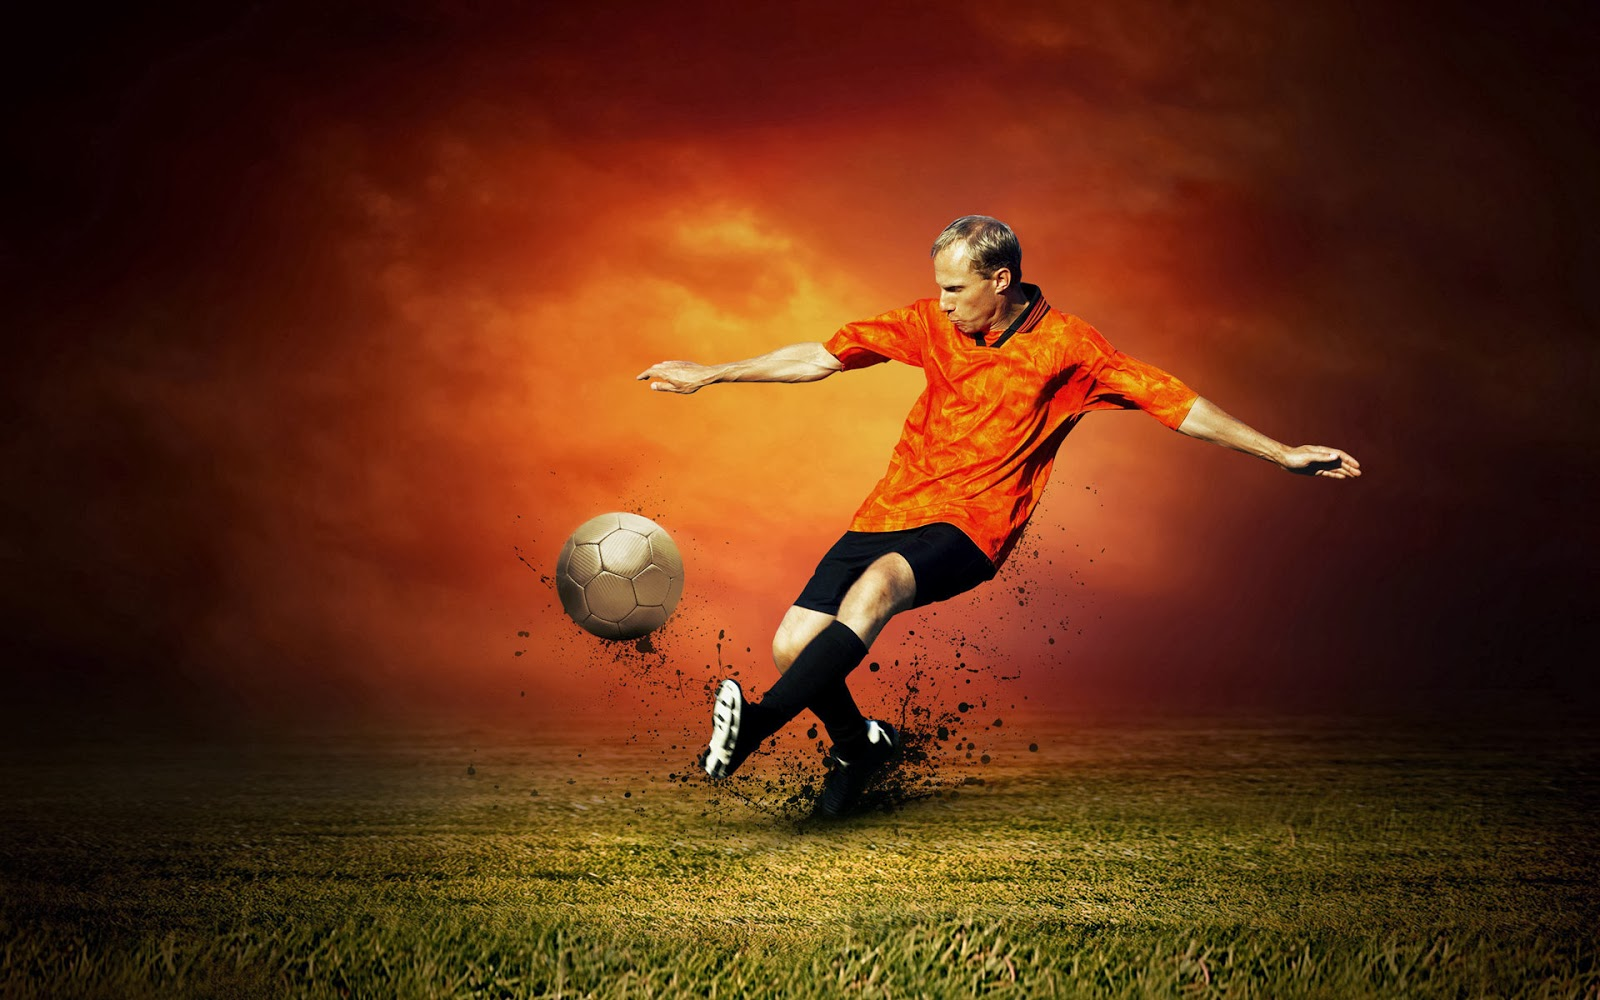 Wallpaper Soccer, Football Keren 2014